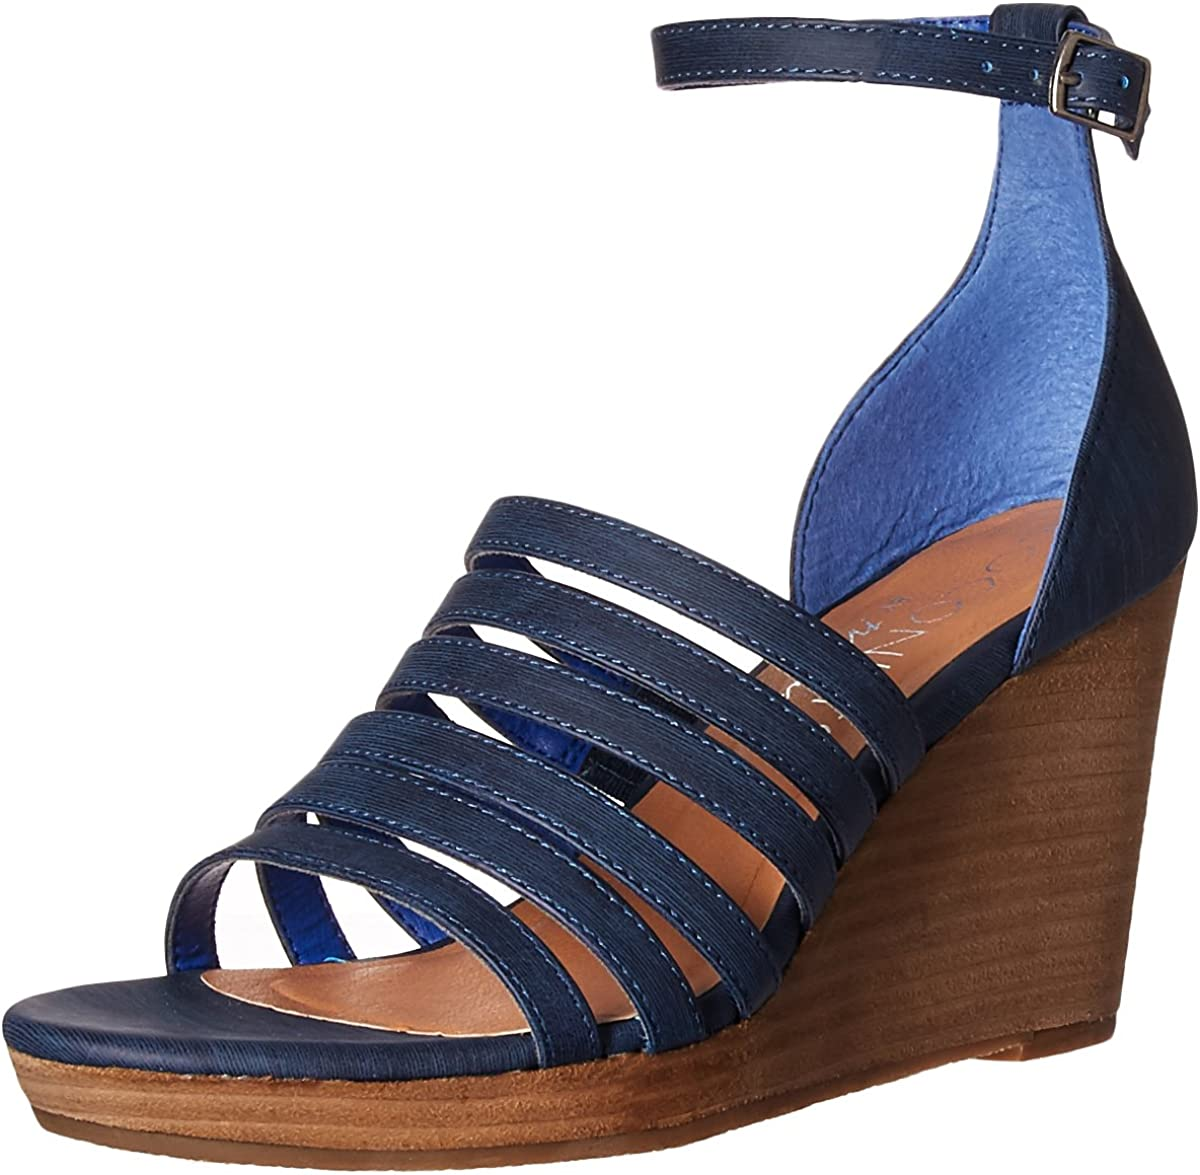 Coconuts by Matisse Women's Wedge Factory outlet Kiera Sandal Special Campaign